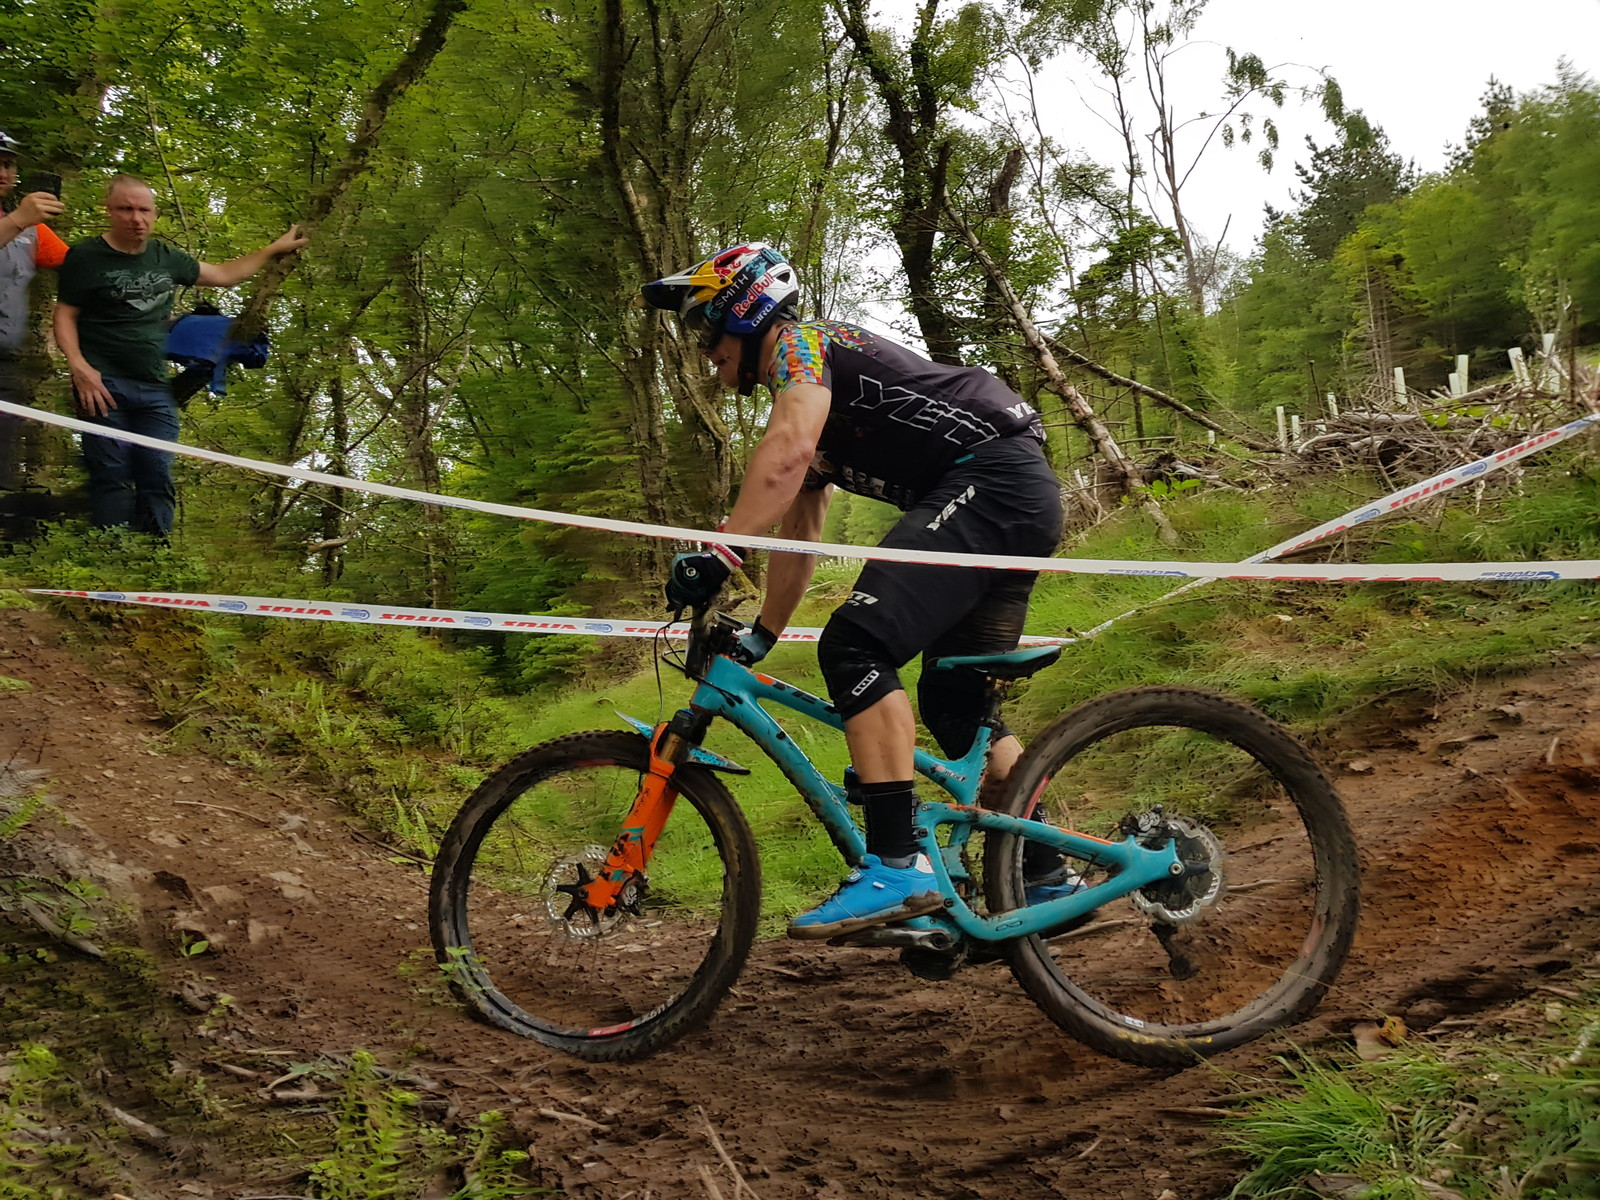 Richie Rude's Yeti SB6c G-ed Out - G-out Project: EWS Ireland 2017 - Mountain Biking Pictures - Vital MTB